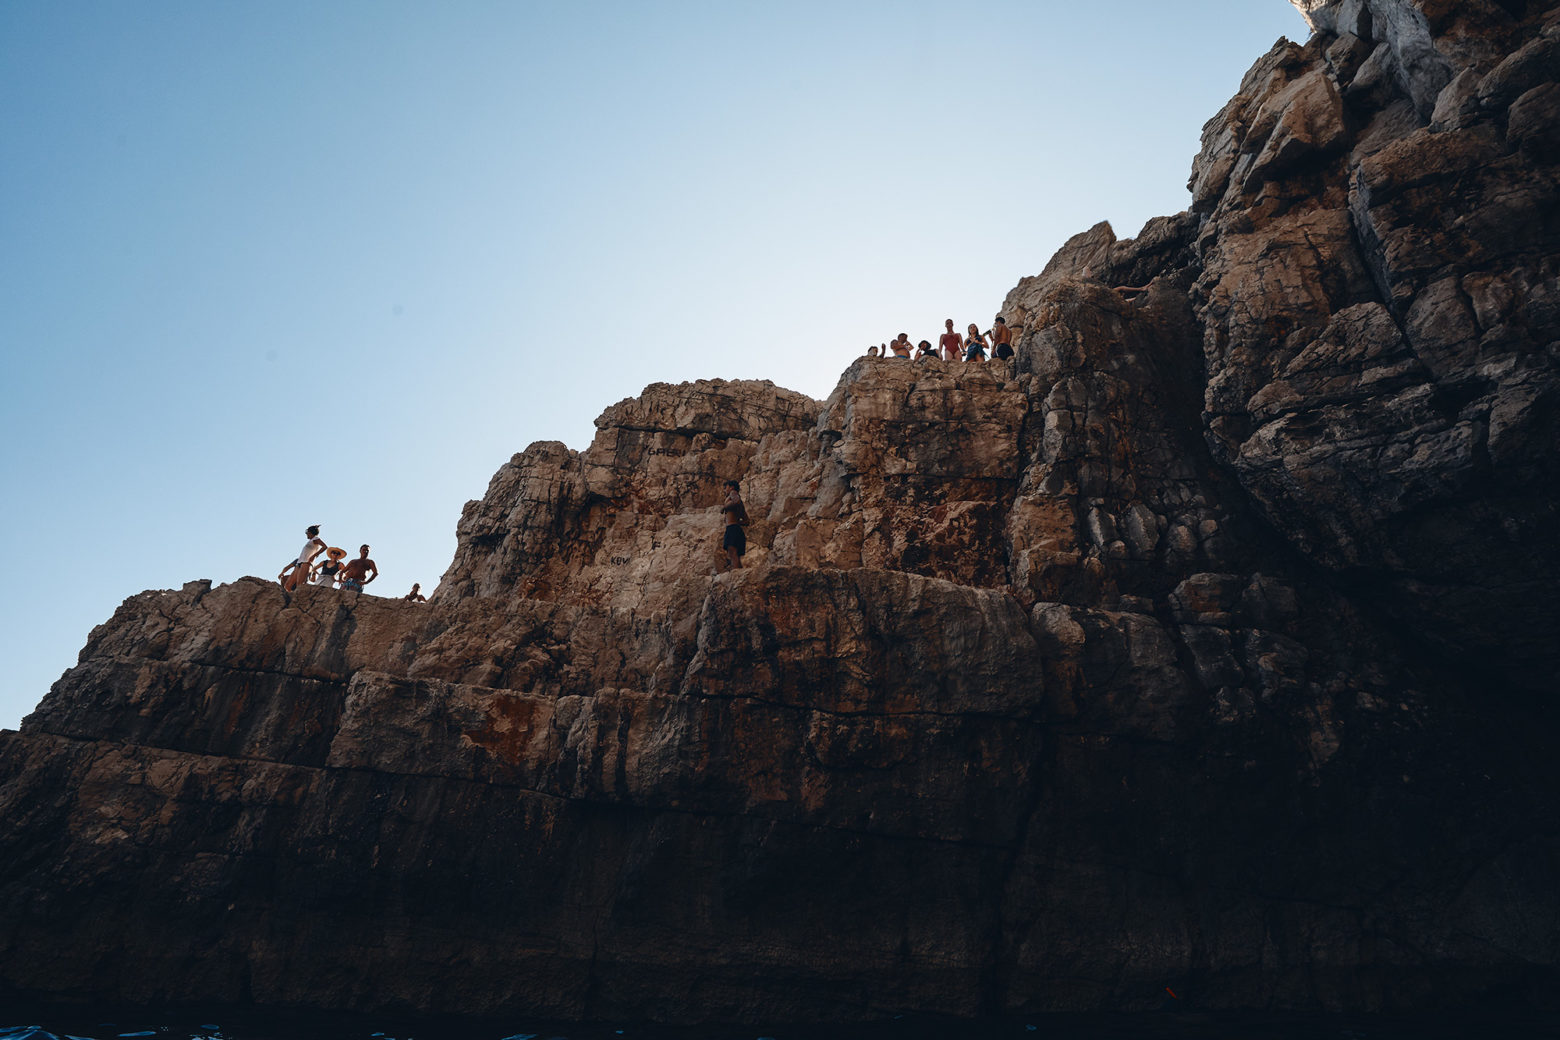 They jump off those cliffs - Croatia